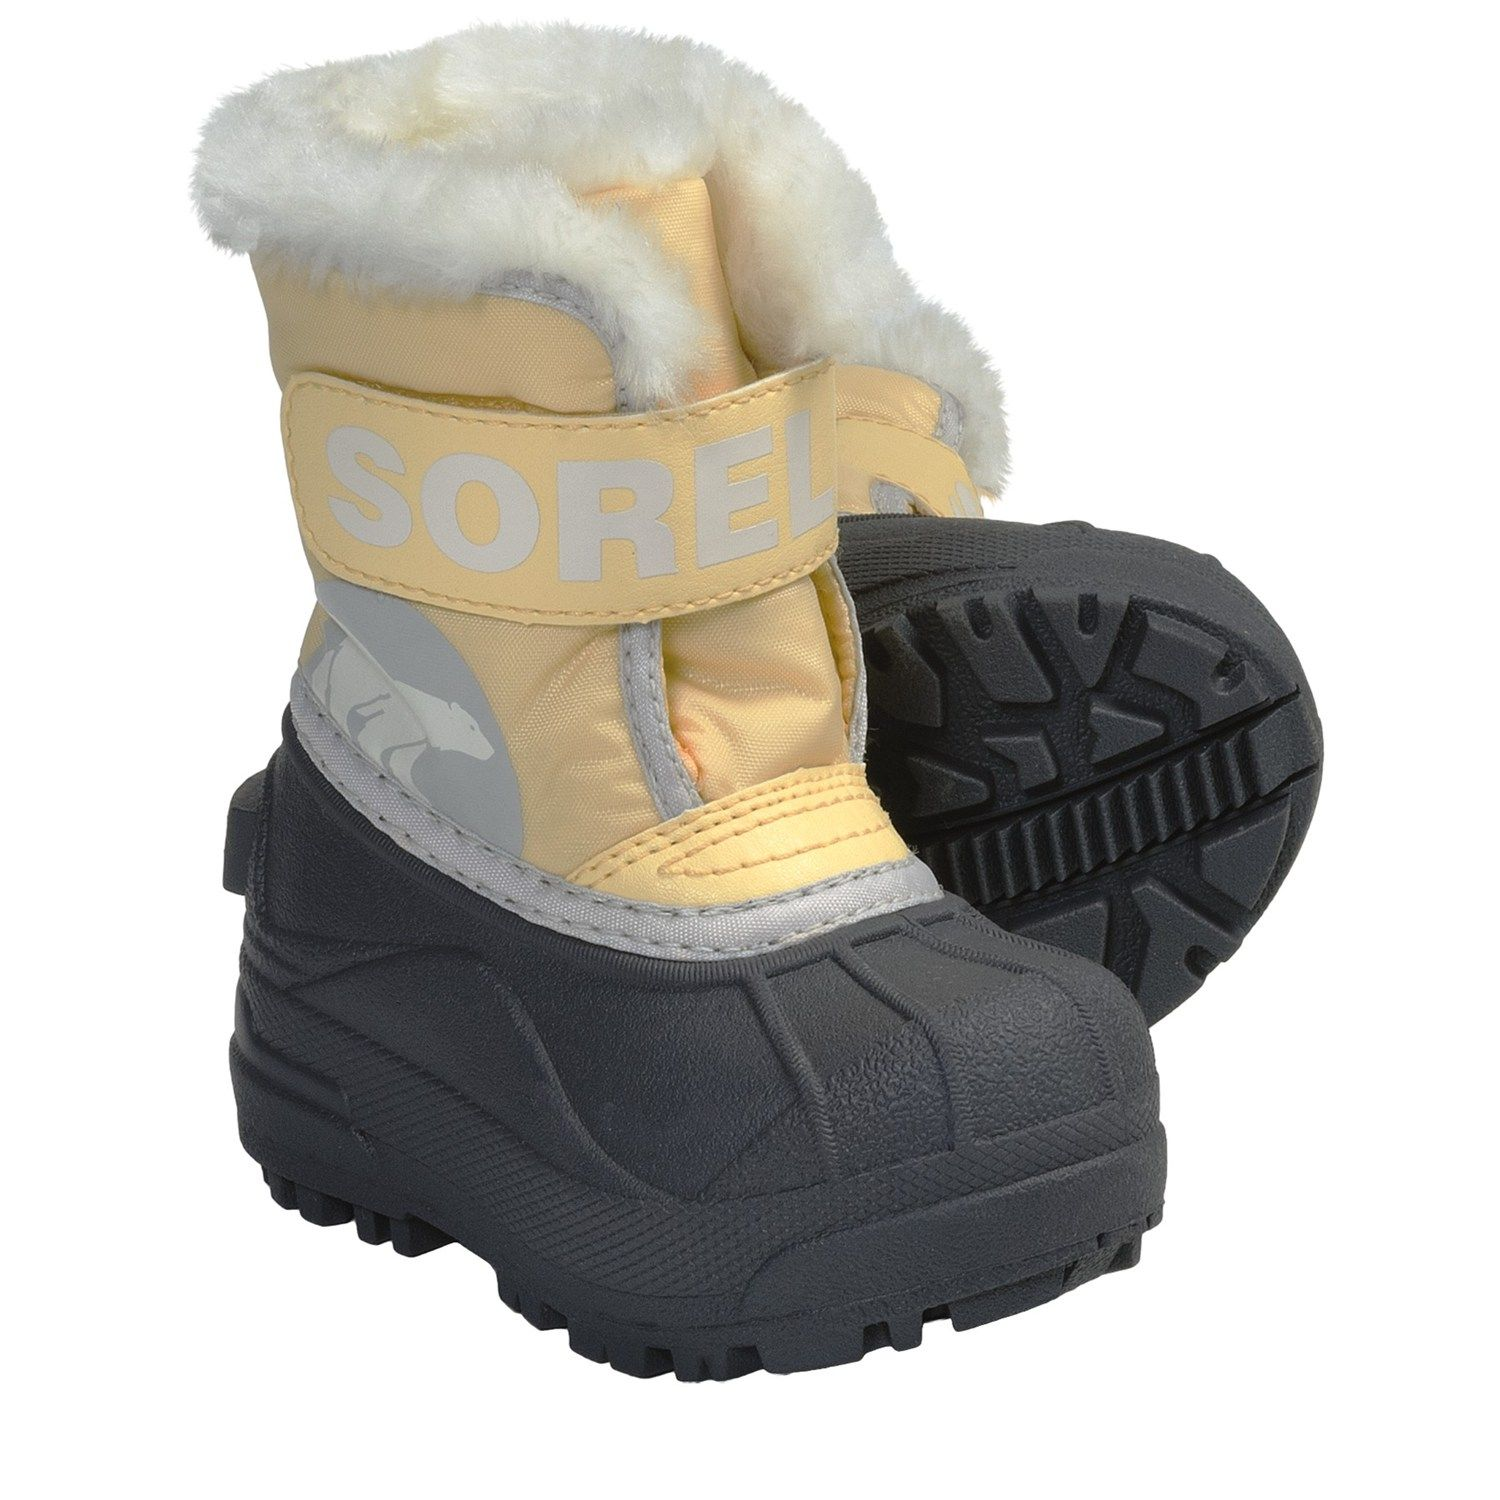 Sorel Snow Commander Winter Boots - Insulated (For Toddlers)